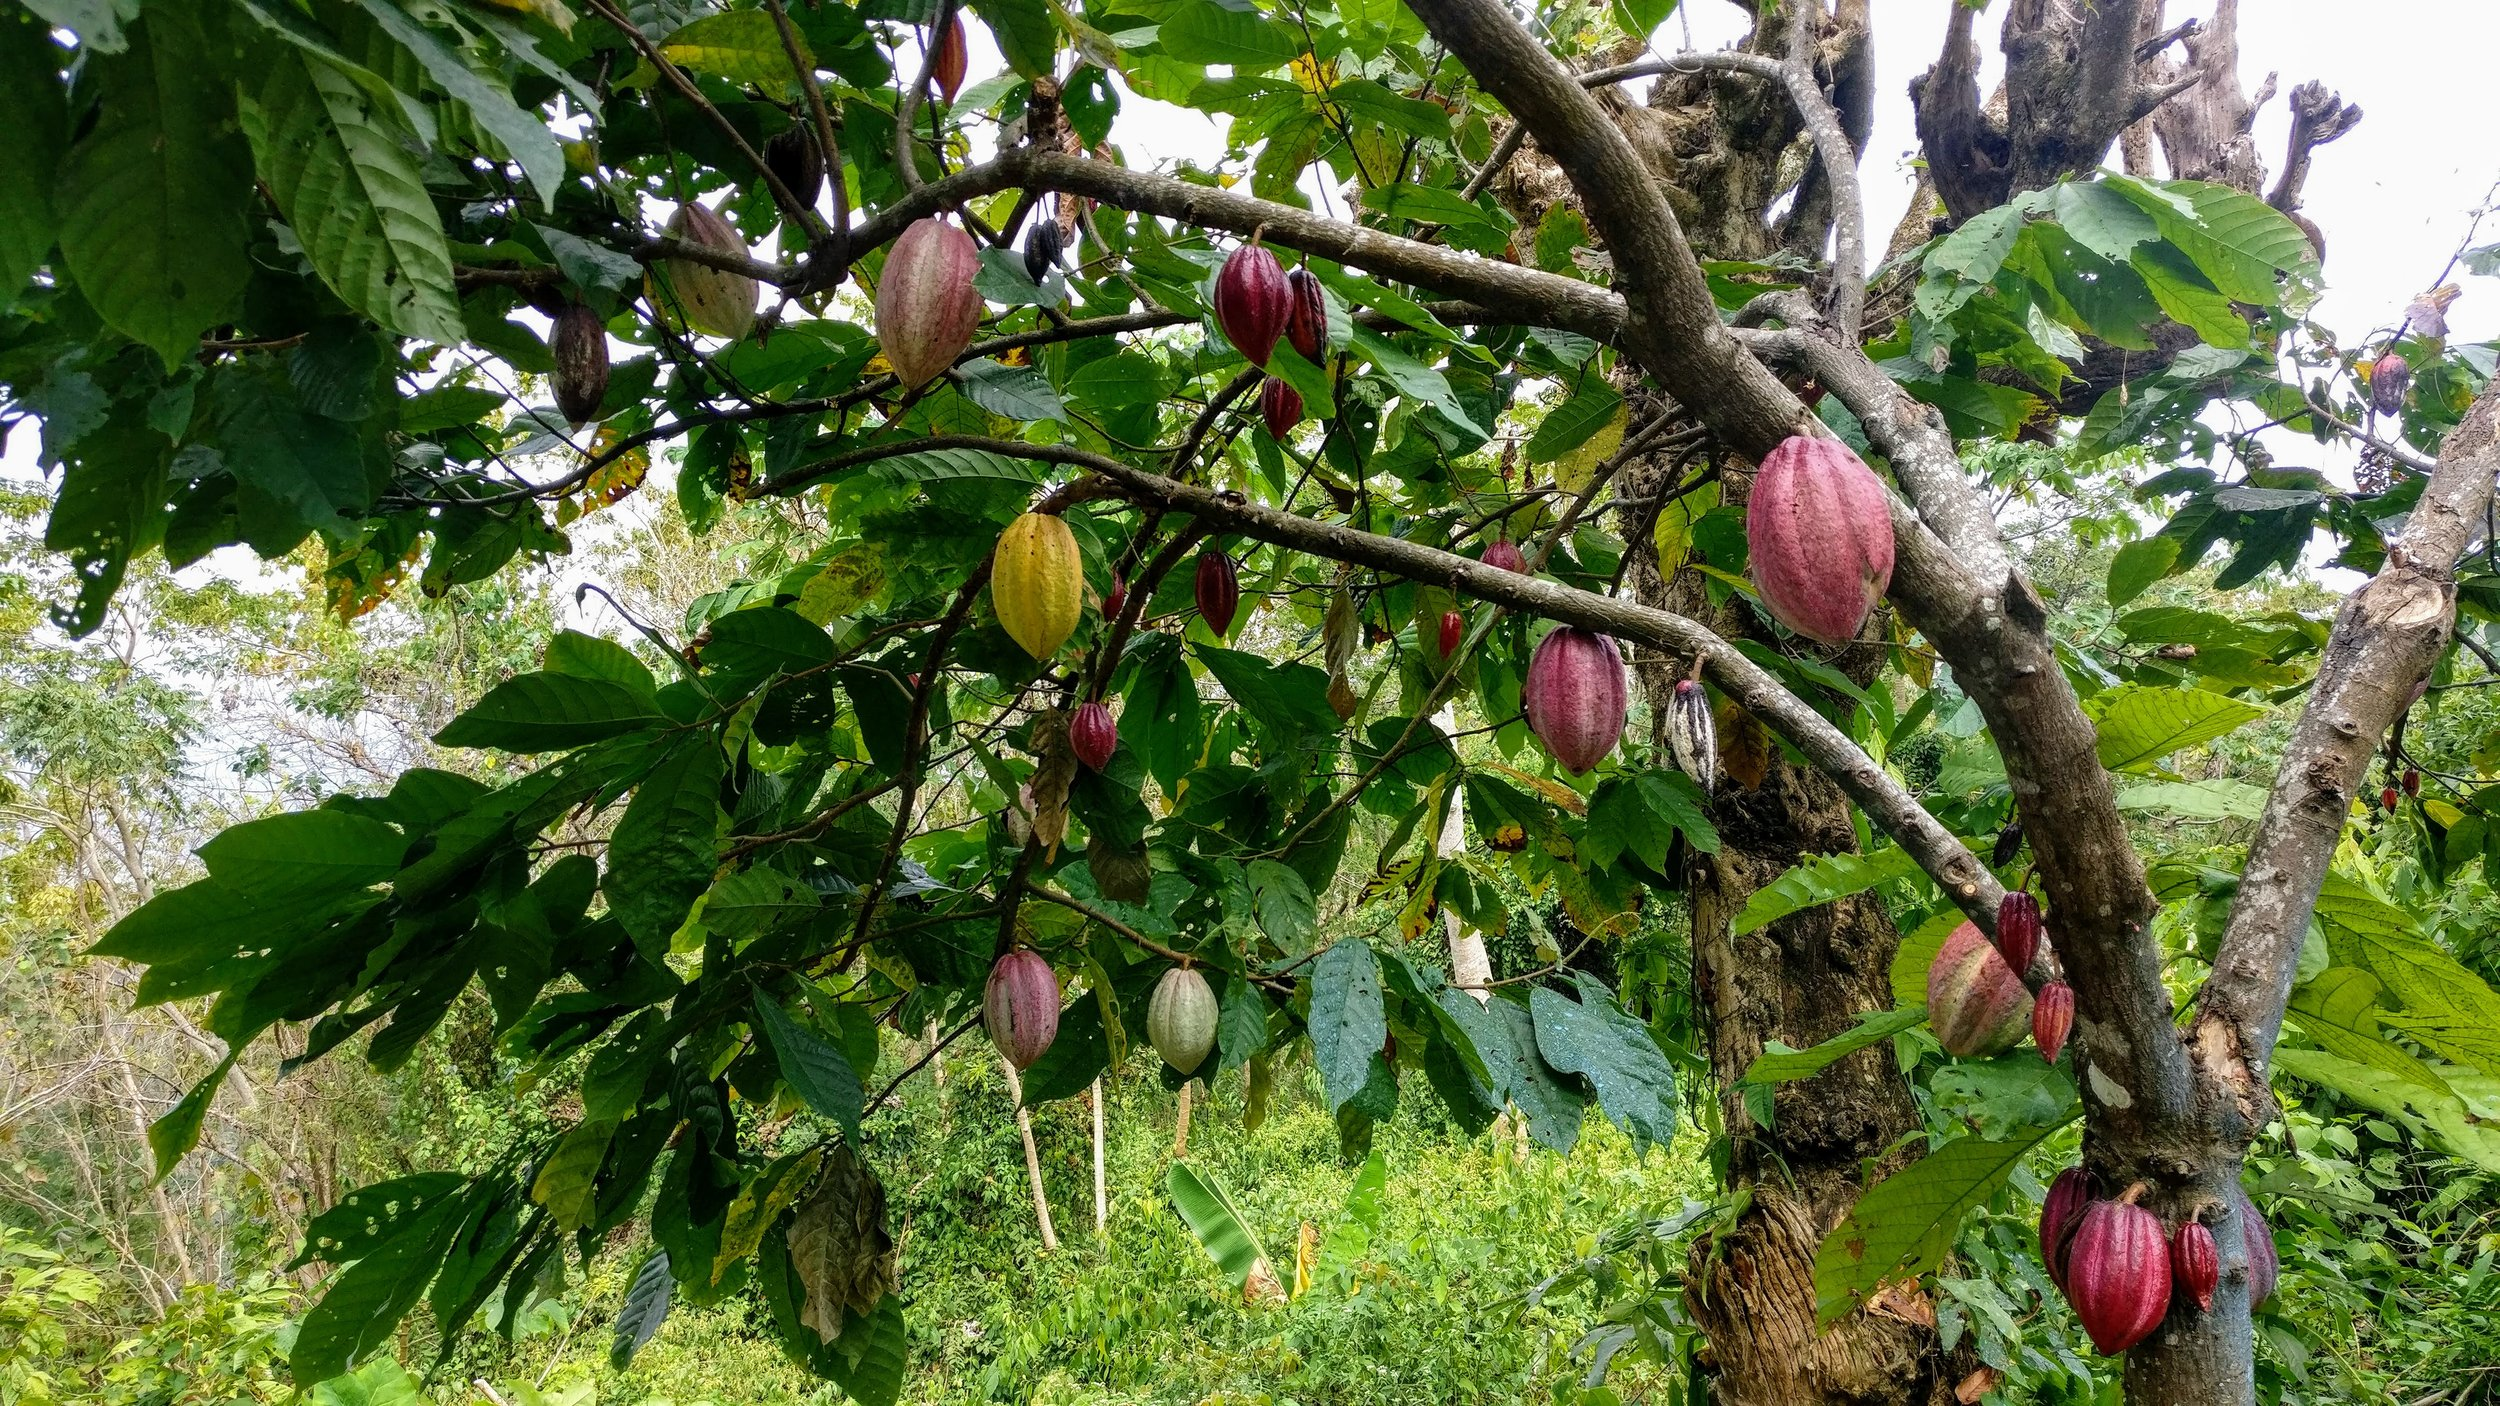 Criollo cacao tree grown from seed with beautiful fruits.